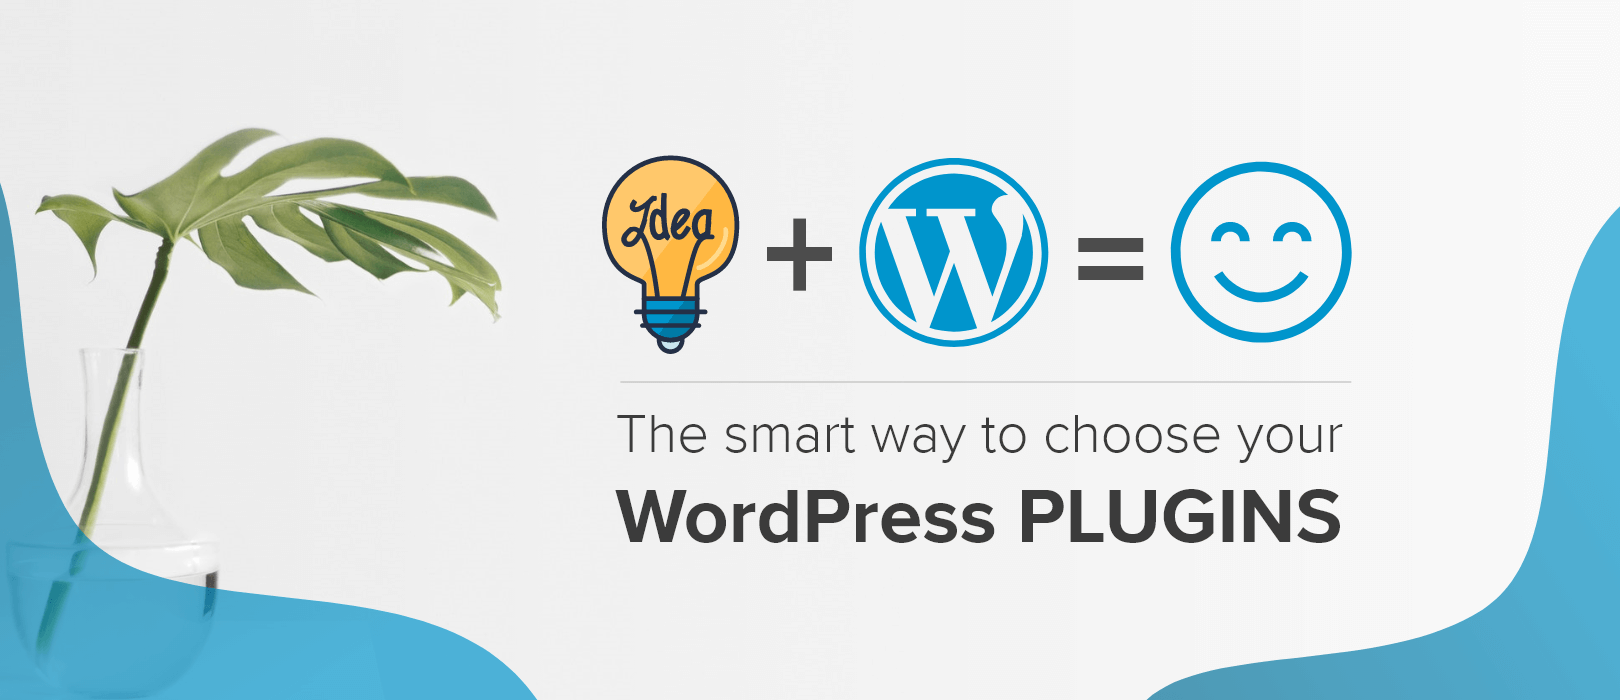 The Smart Way to Choose Your WordPress Plugins